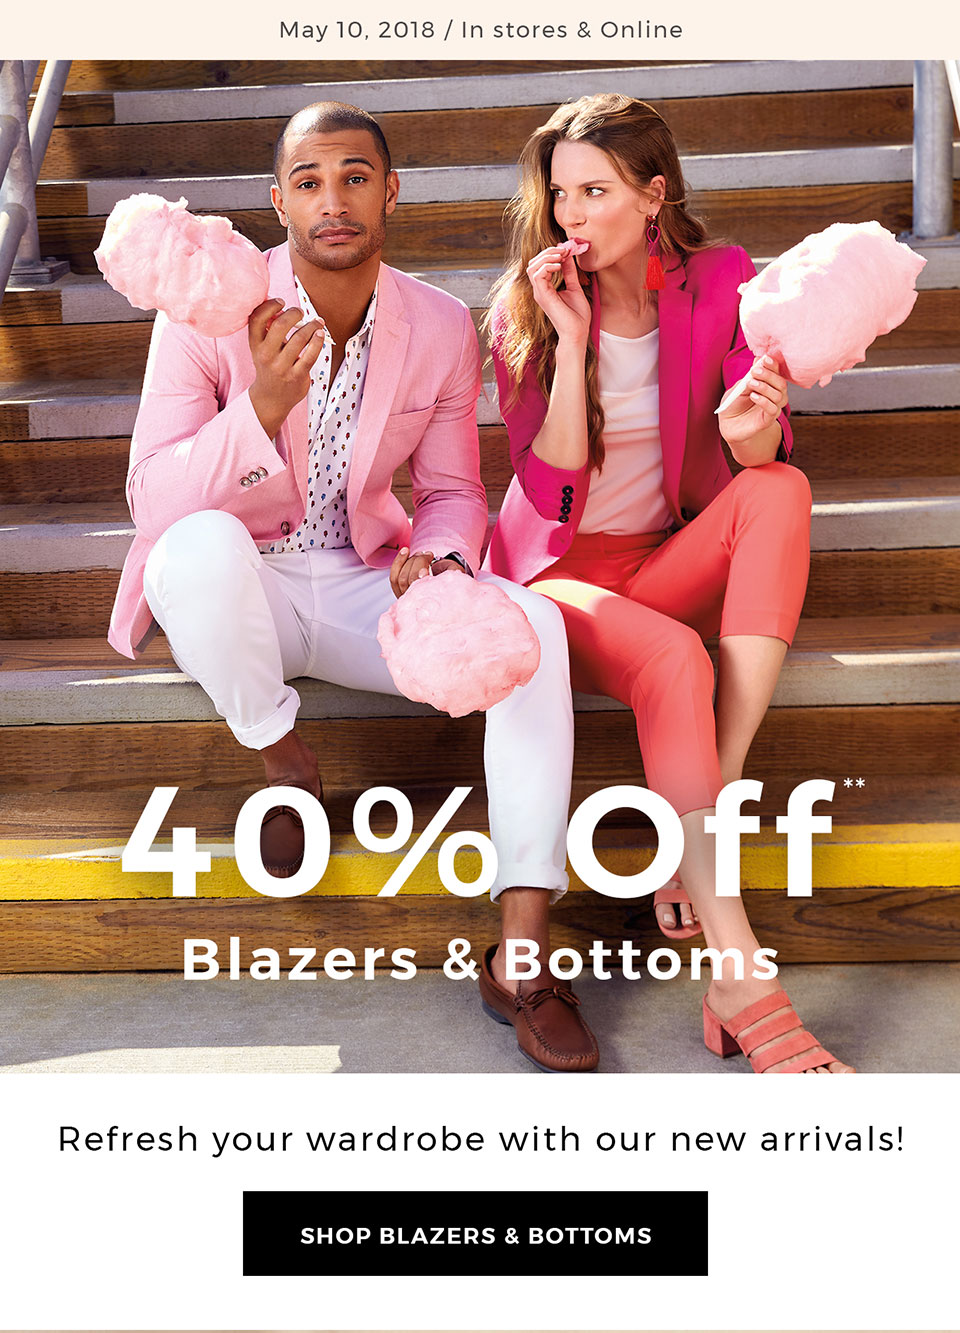 Work it: 40% off bottoms and blazers